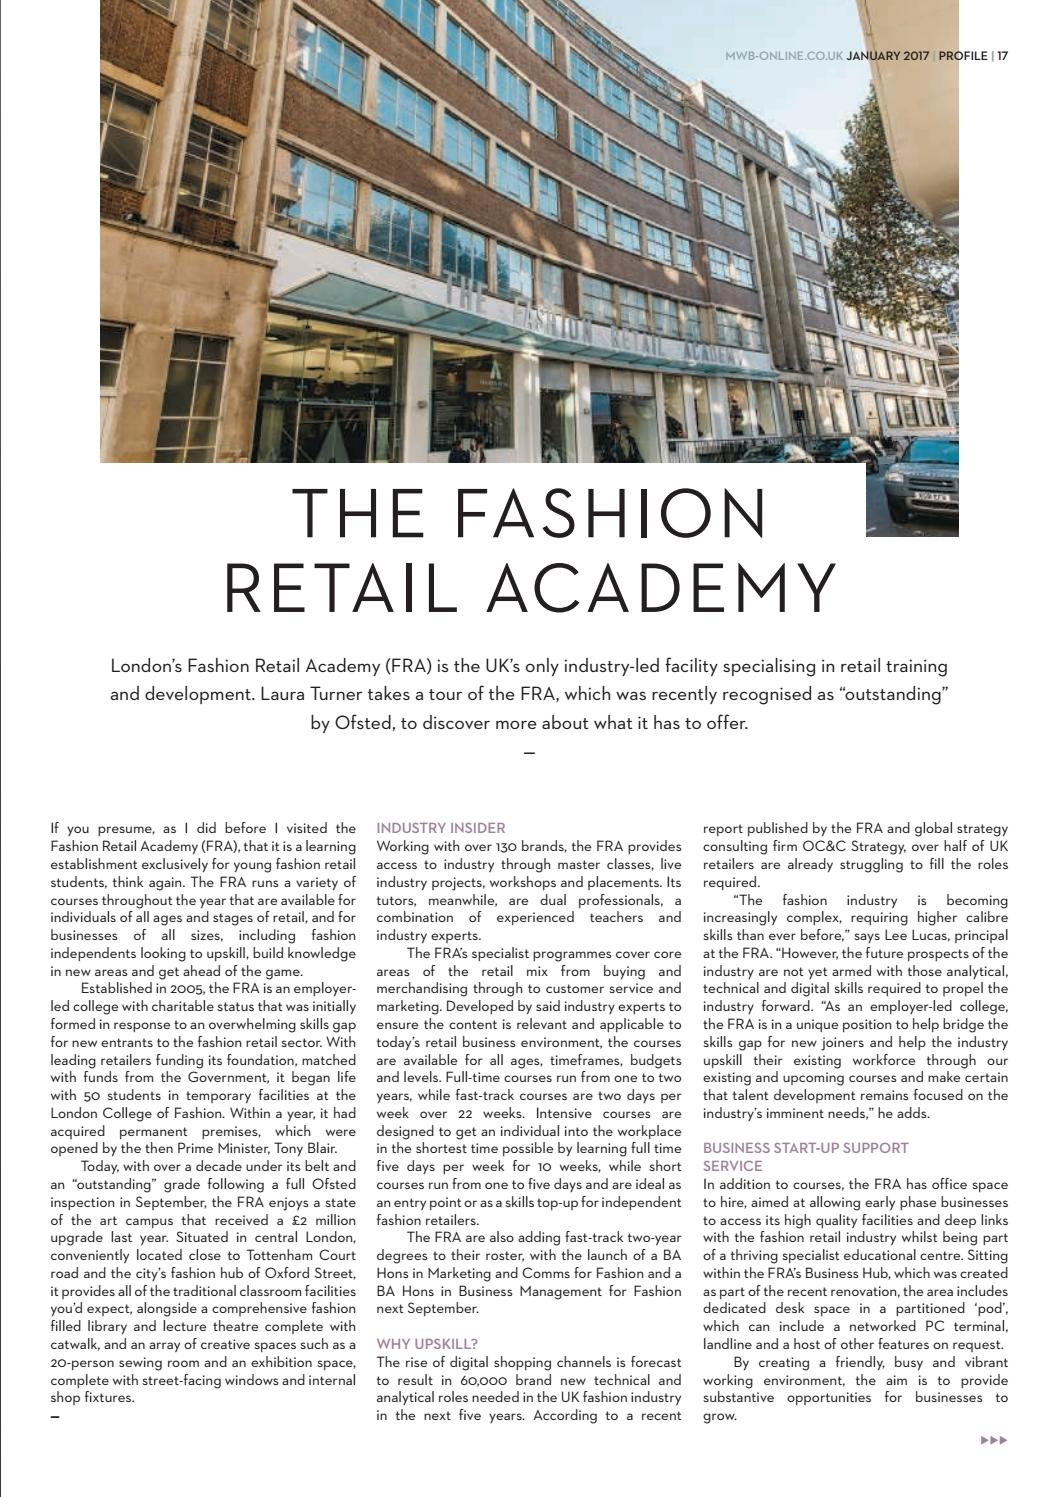 Discussion on this topic: Fashion Retail Academy rated outstanding' by Ofsted, fashion-retail-academy-rated-outstanding-by-ofsted/